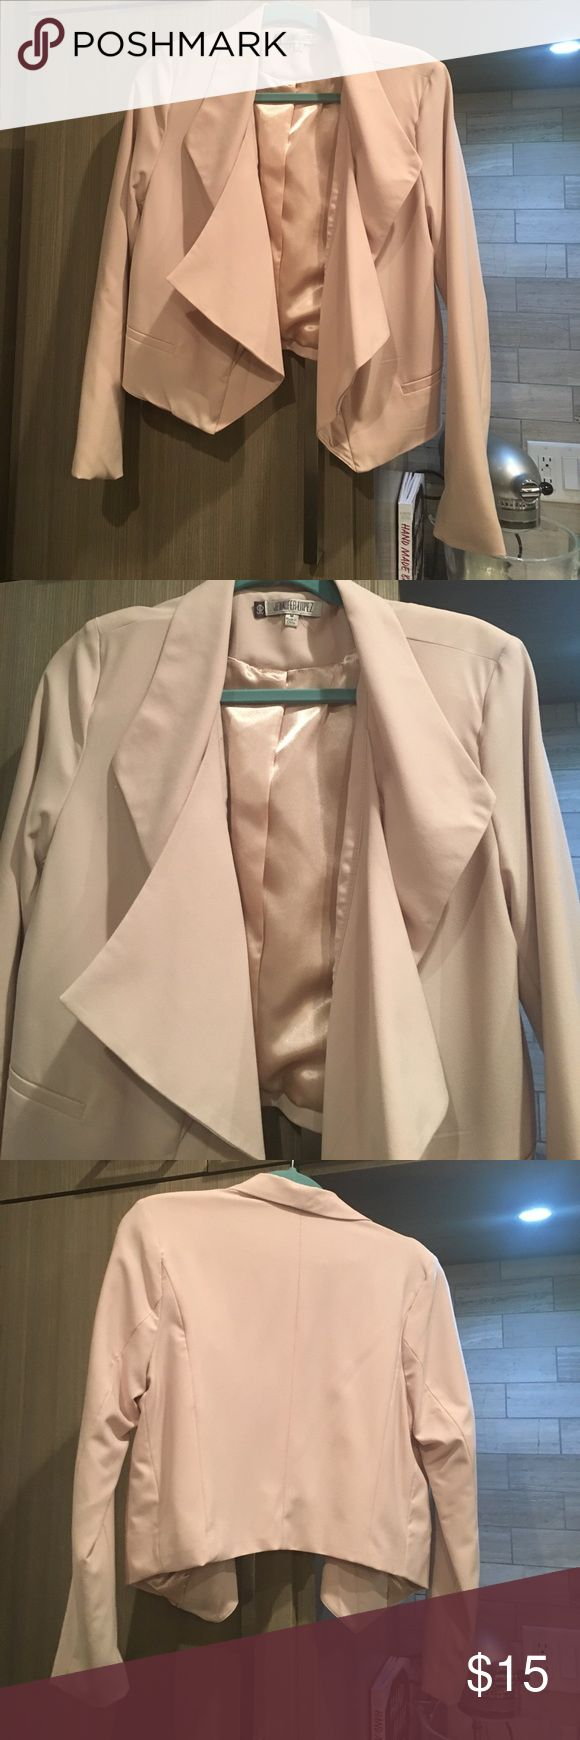 Jennifer Lopez WORN ONCE! Light weight pink blazer WORN ONCE! just dry cleaned and in great condition. Perfect with a tank top and jeans! Light weight pink jacket no buttons and falls nicely! Size M Jennifer Lopez Jackets & Coats Blazers